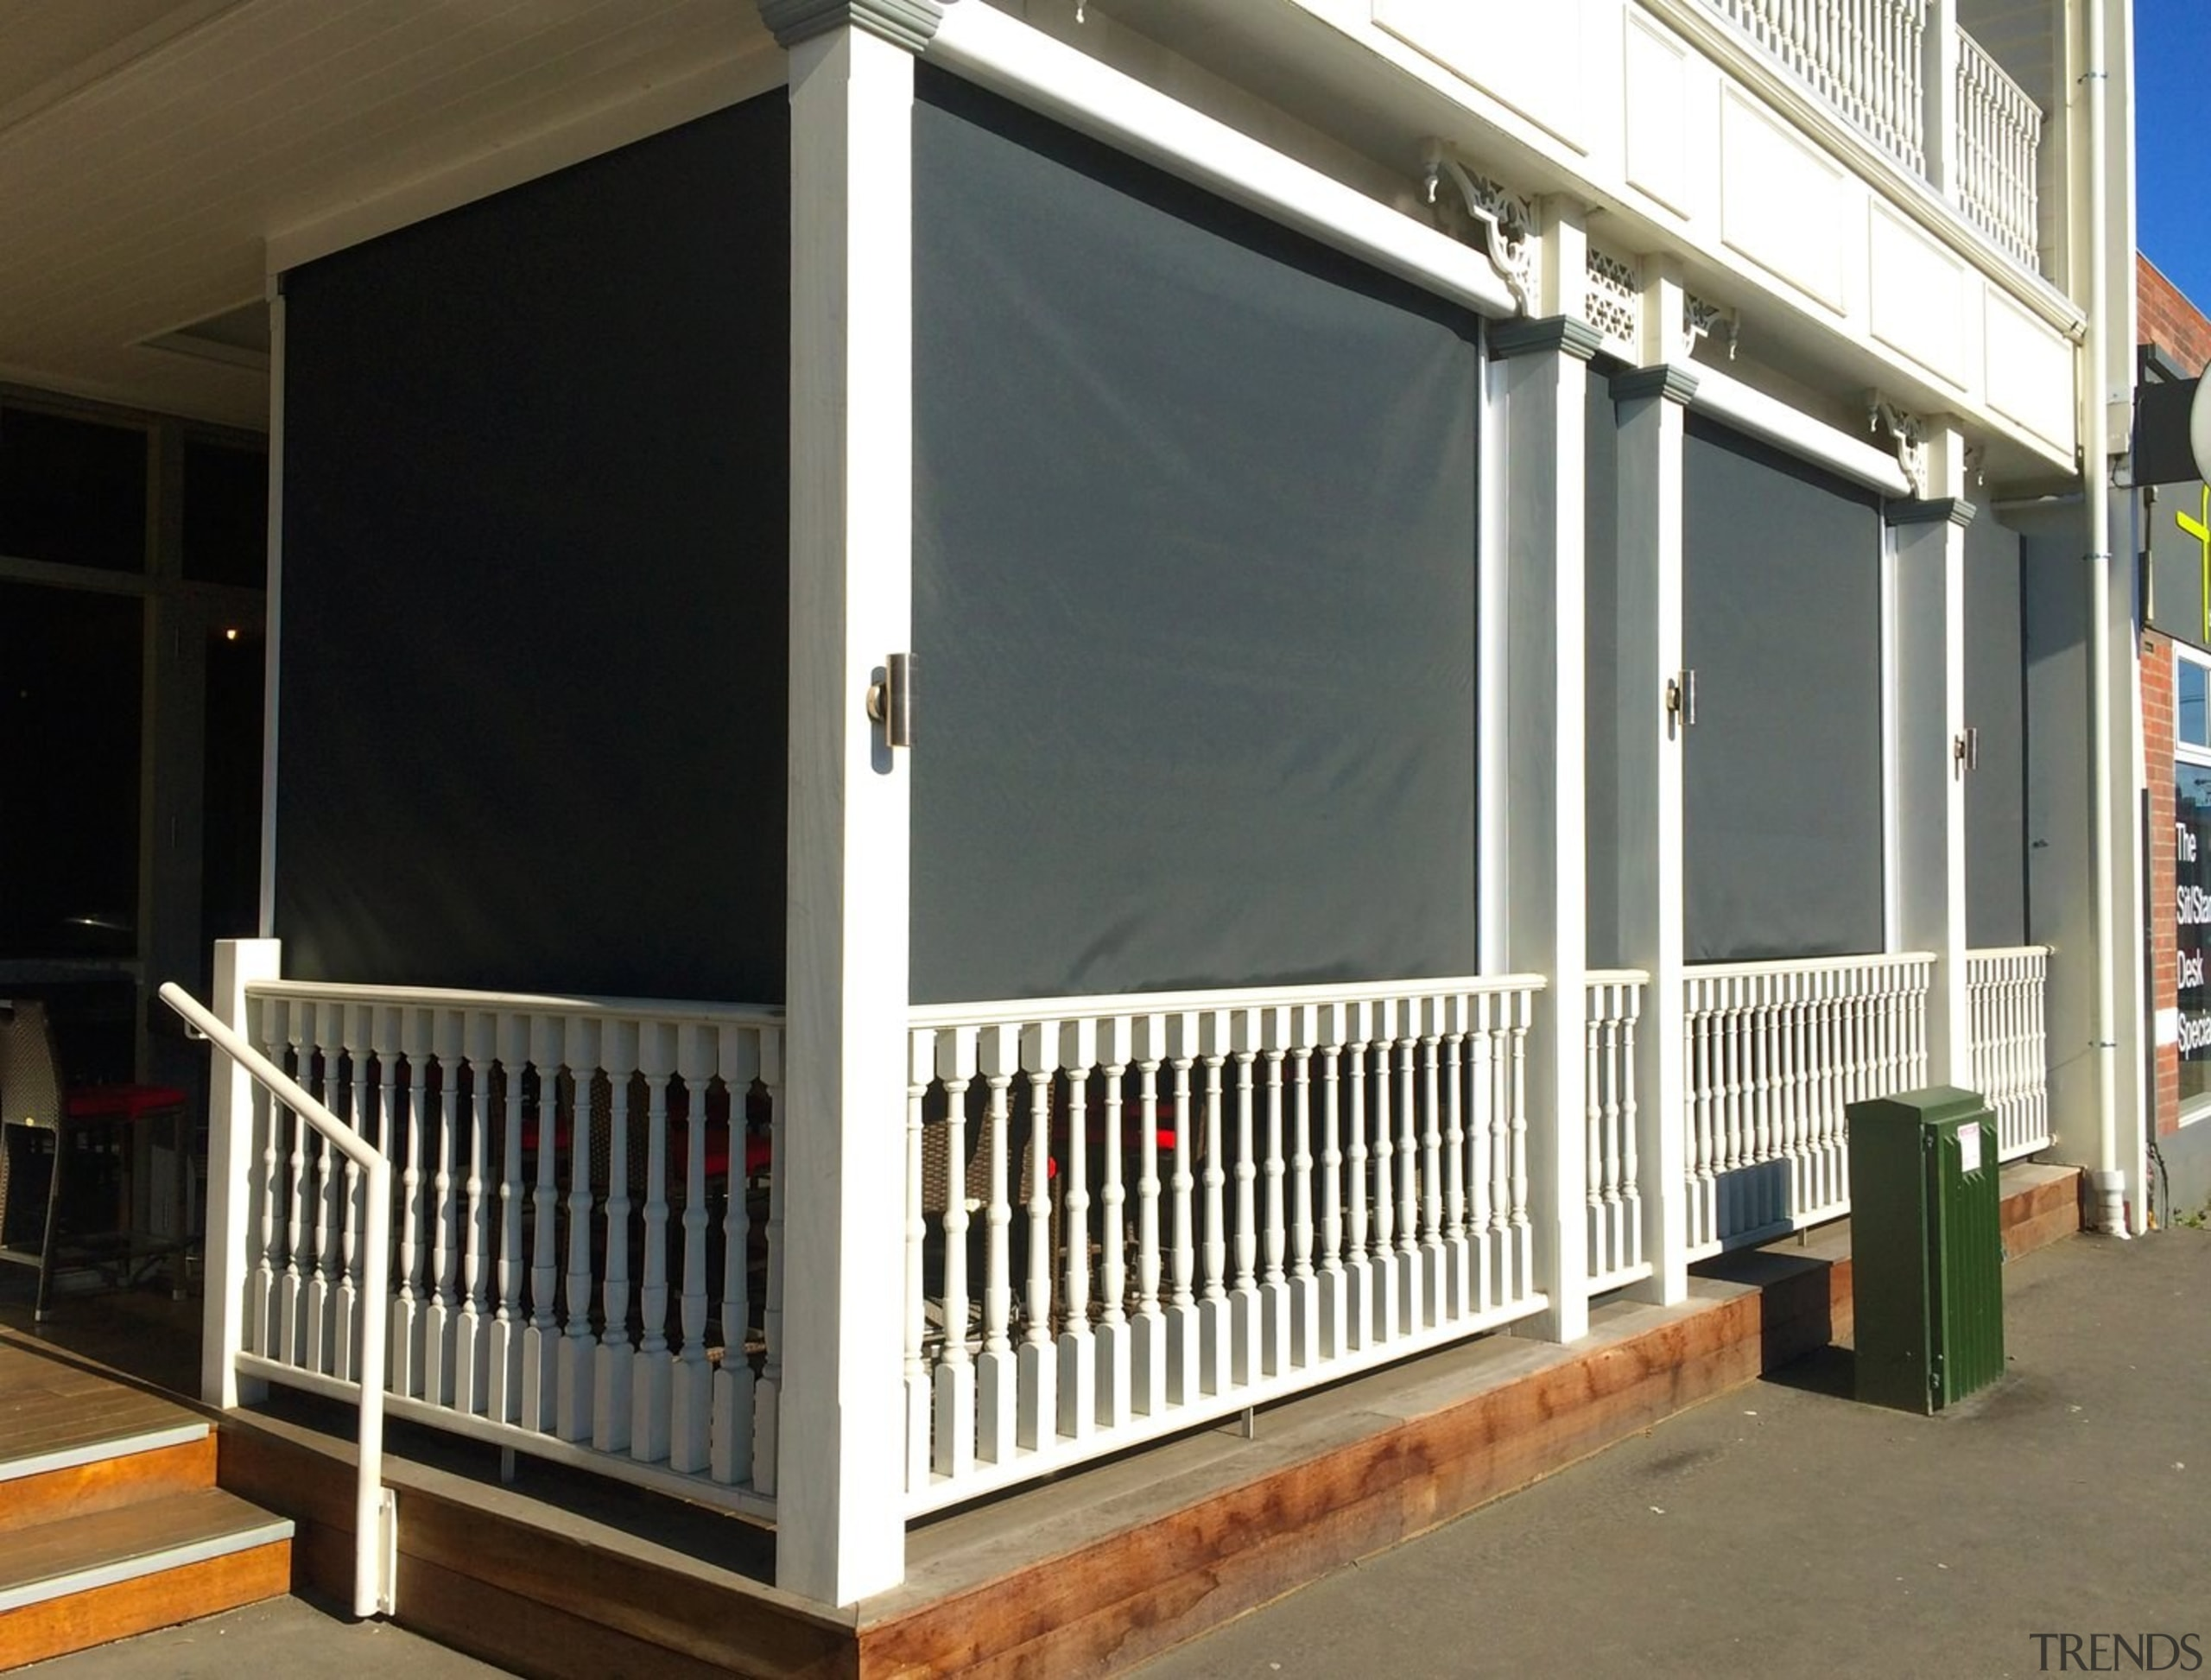 Calido Screens after being put down - Calido door, handrail, outdoor structure, porch, product, shade, structure, window, gray, black